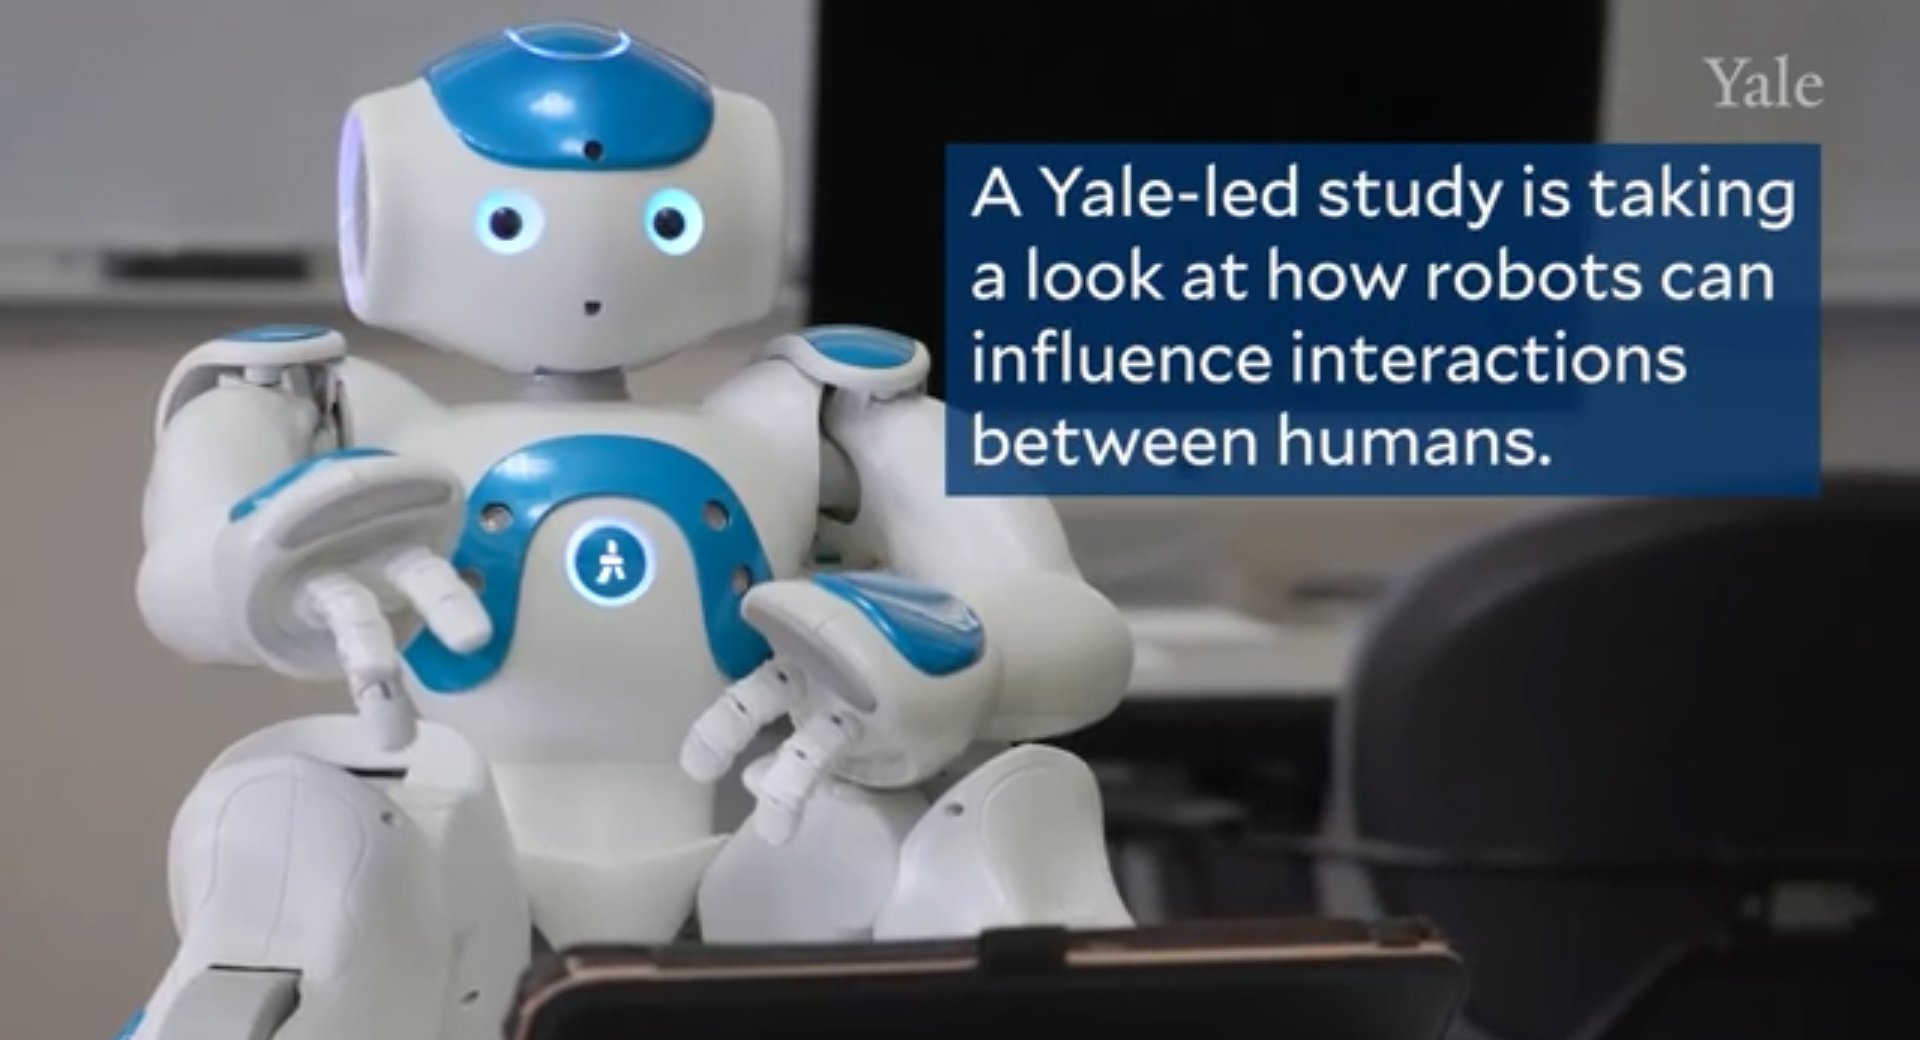 An expressive robot has helped people interact with each other